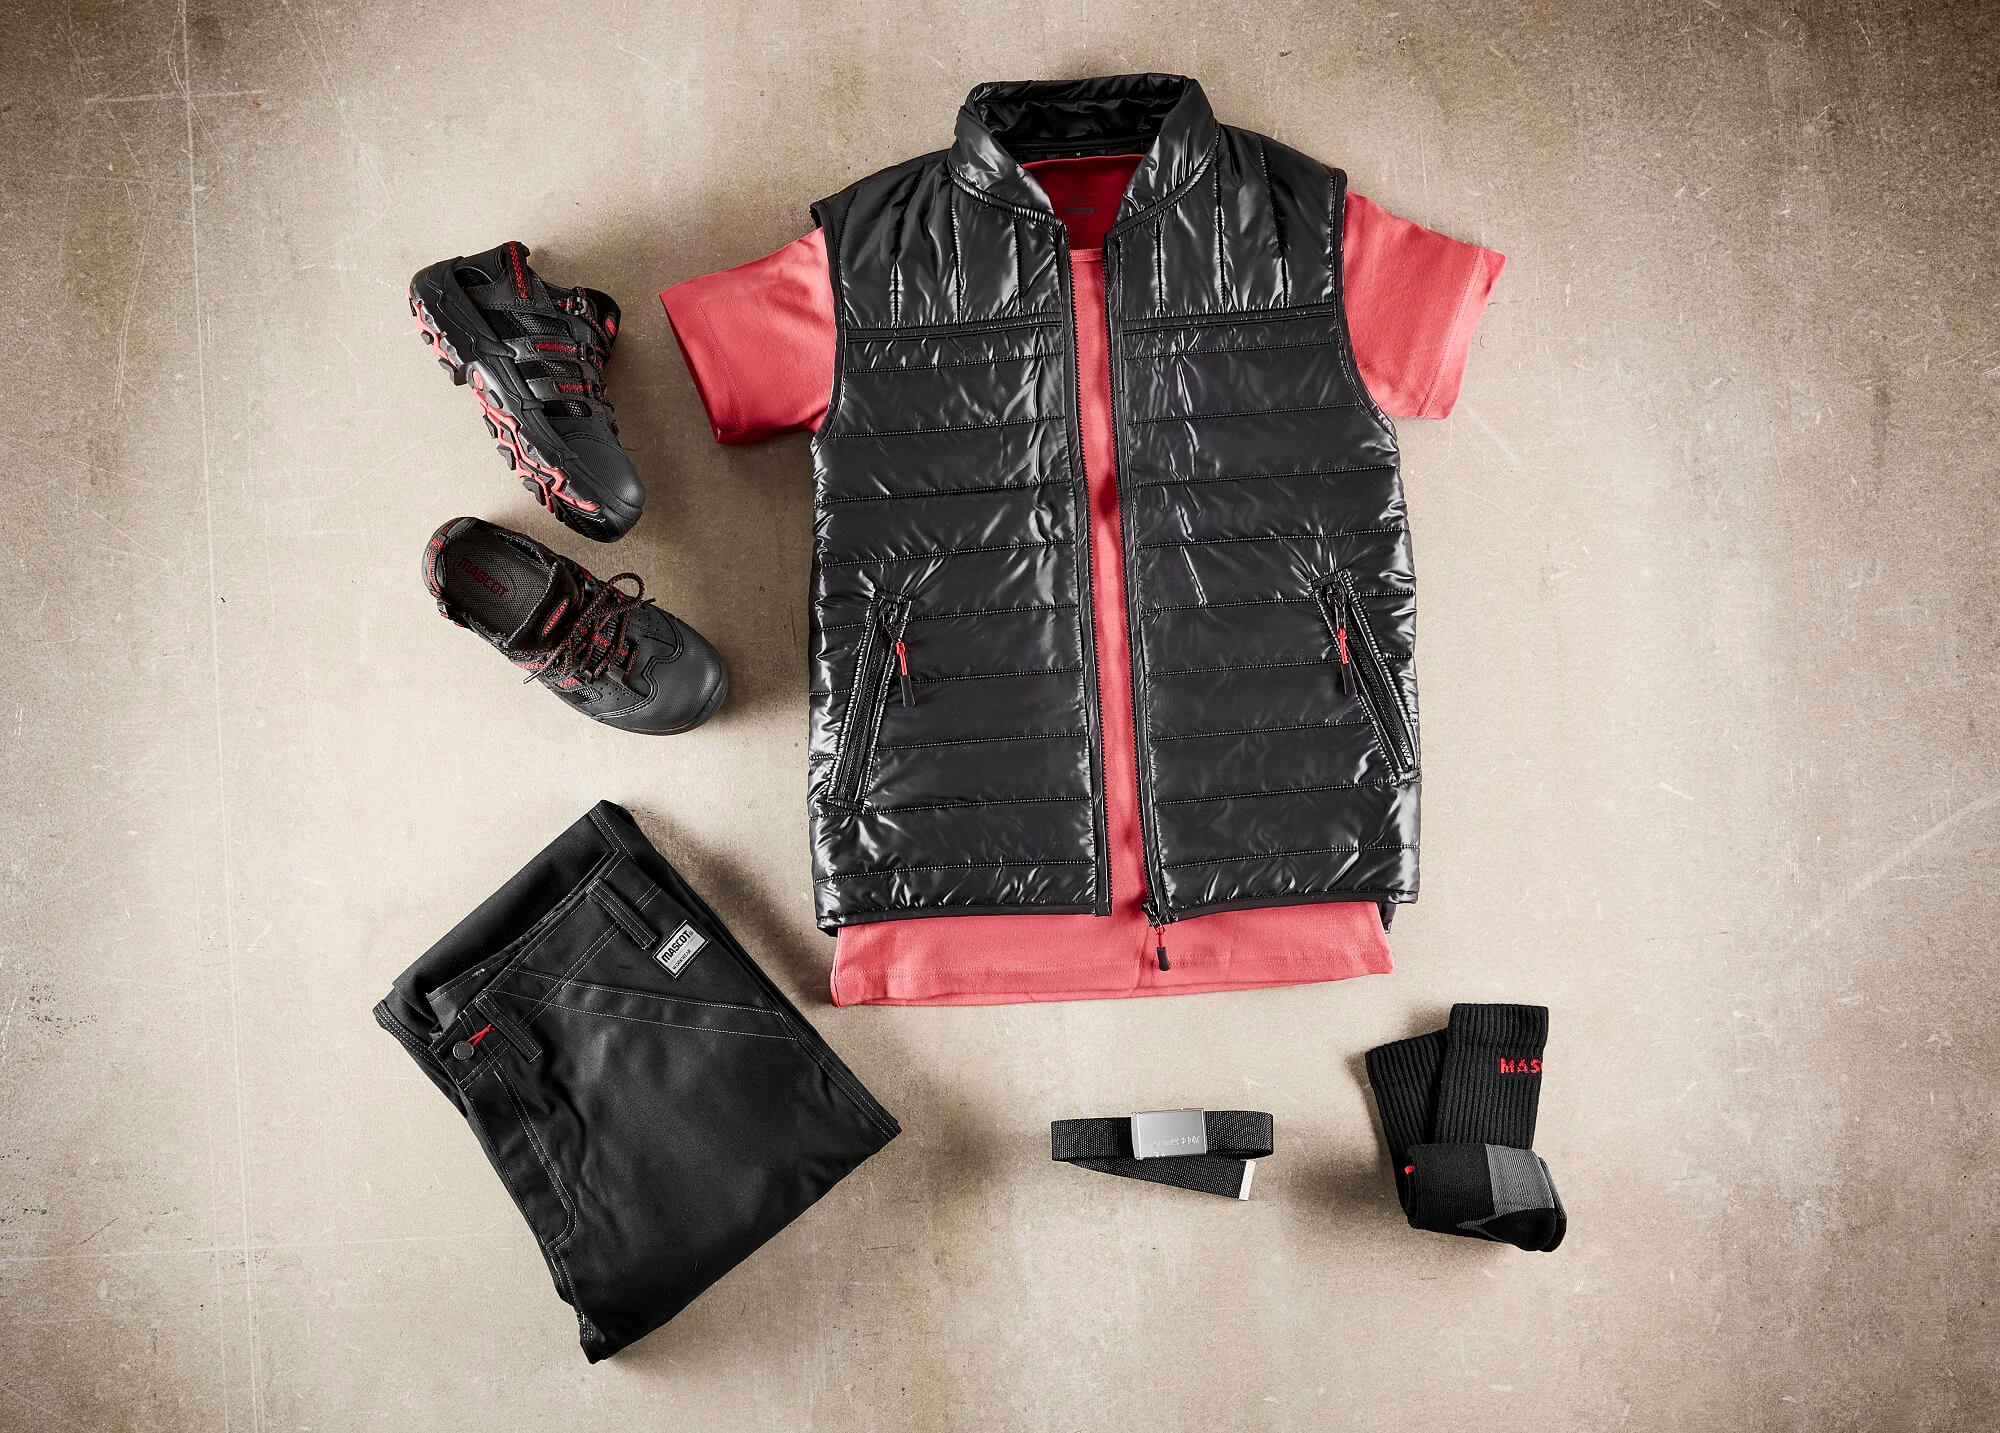 Thermal Gilet & Trousers Black - T-shirt Red - Collage